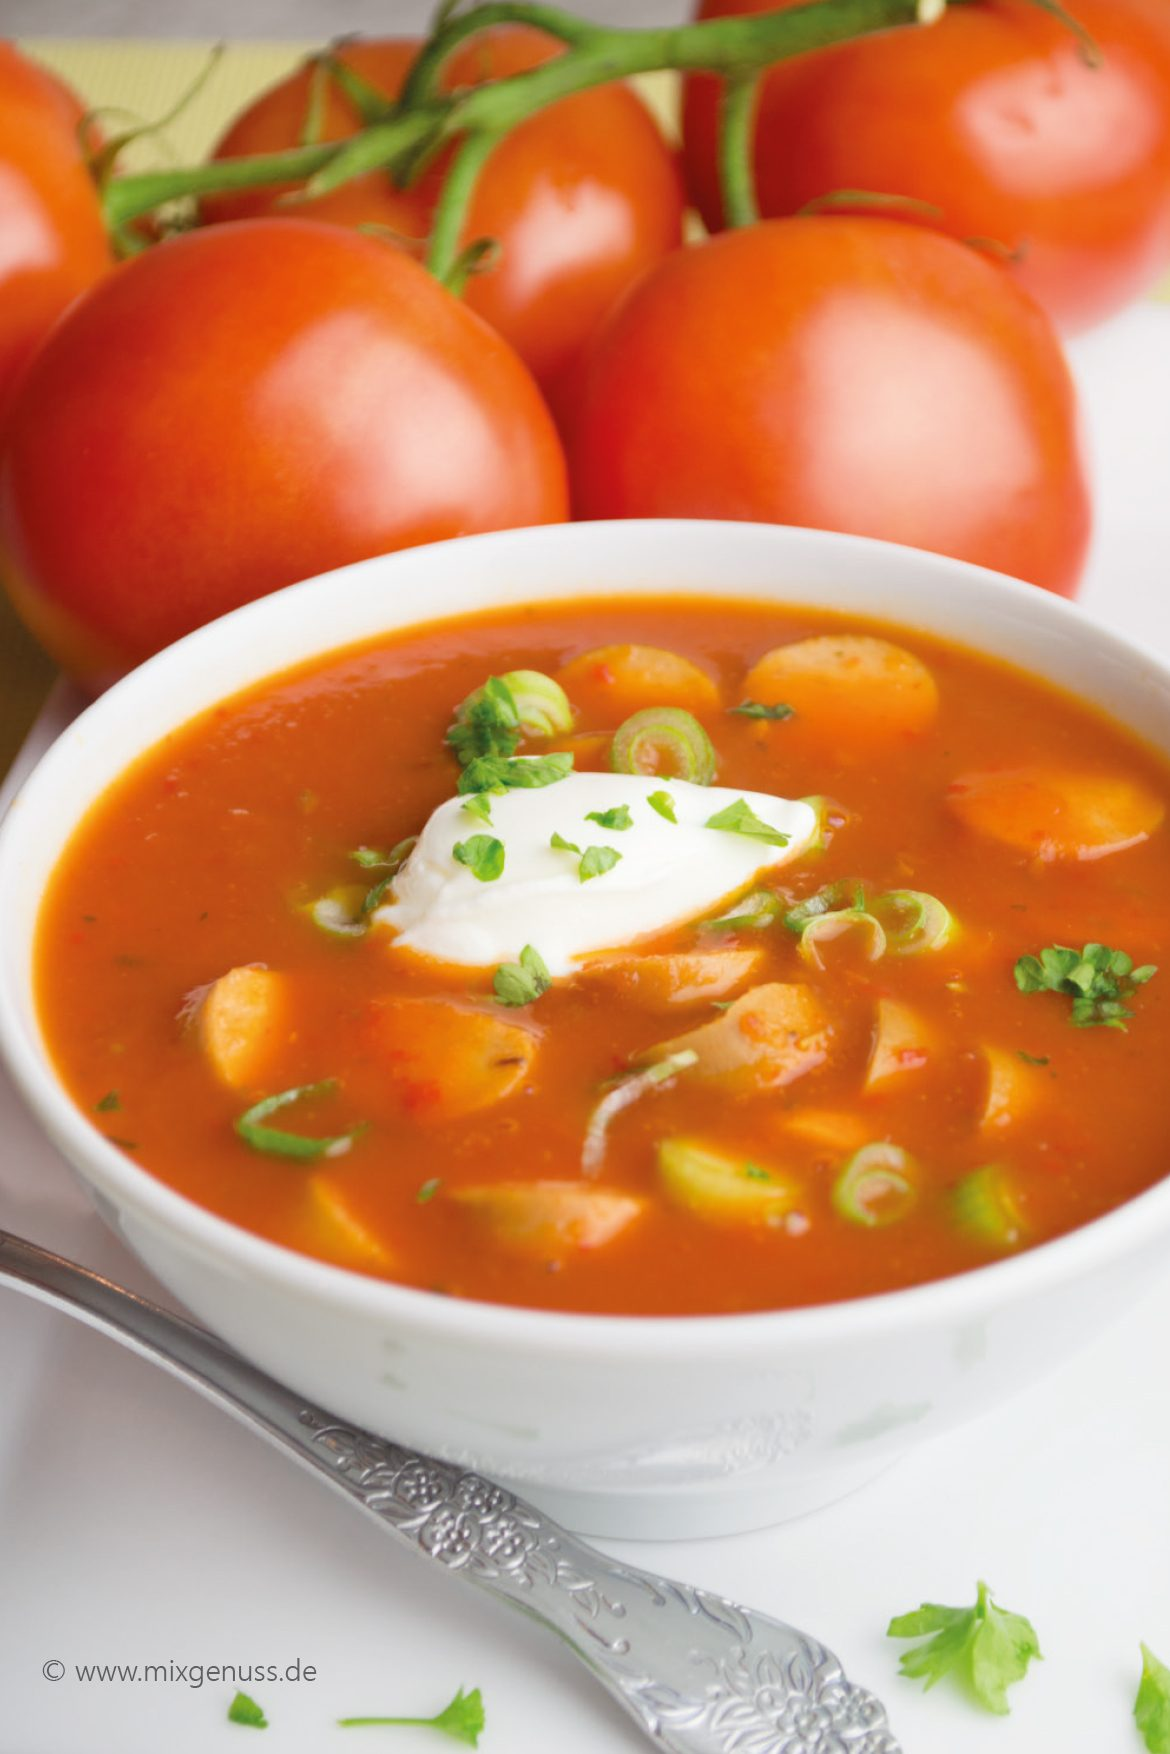 Tomaten-Paprika-Suppe